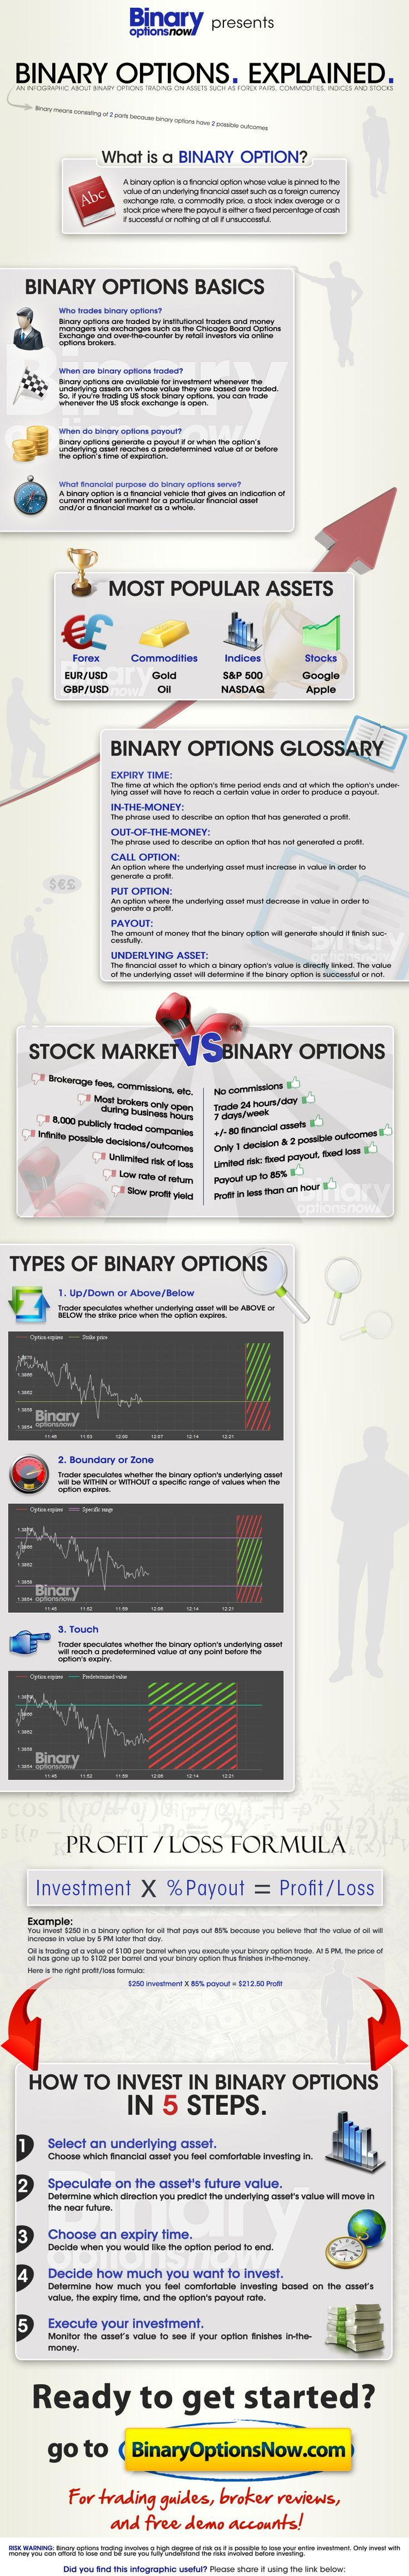 Binary option trading explained